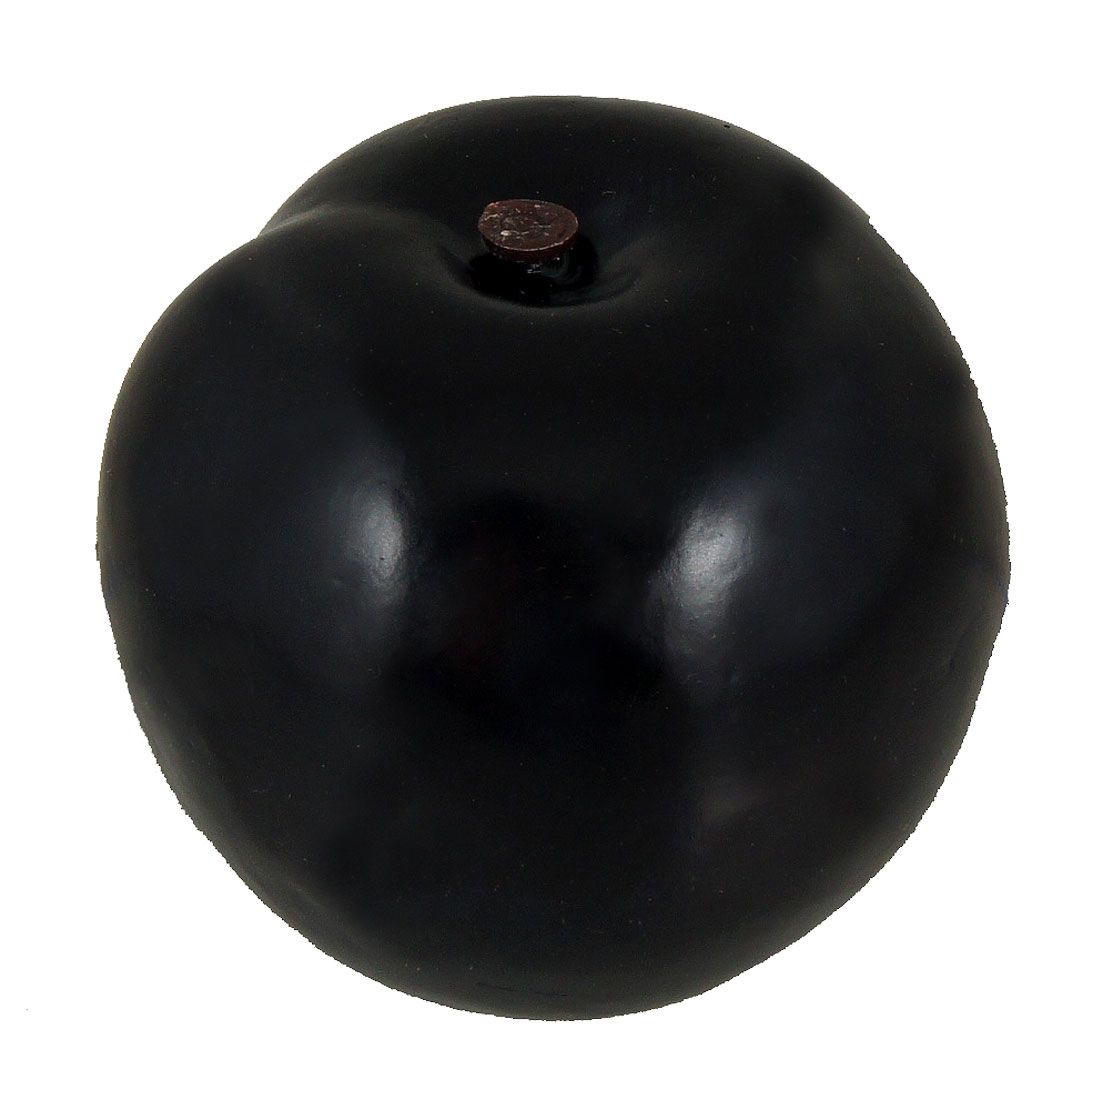 6cm High 7cm Dia Simulation Black Plum Fruit Decor for Home Table